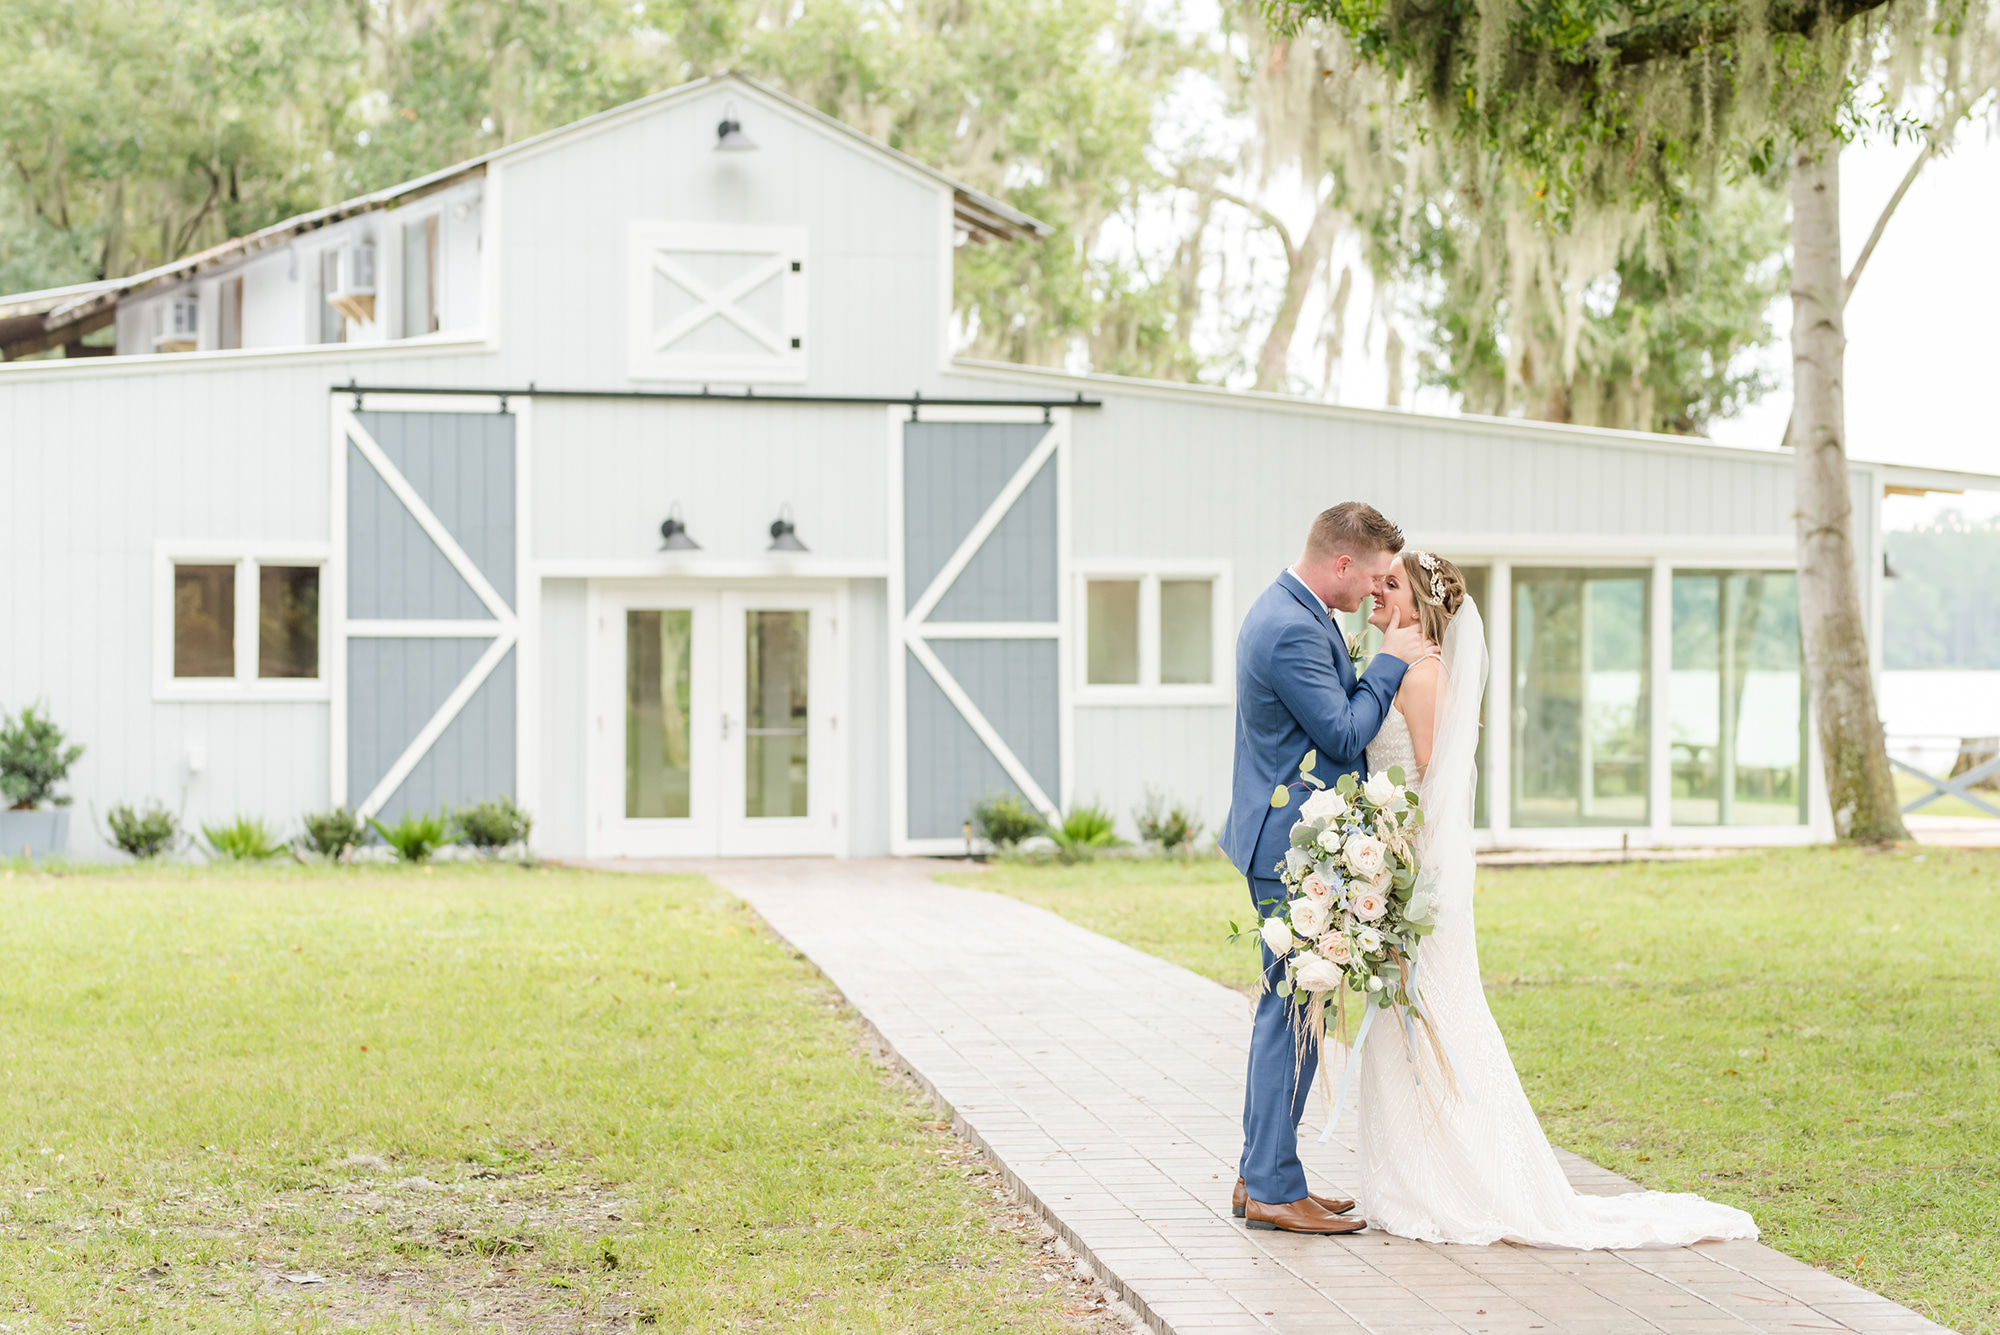 Tampa Bay Bride and Groom Intimate Embrace outside Barn at Crescent Lake, Groom in Dark Blue Suite, Bride holding Bouquet Whimsical Dusty Rose Florals, Ivory Roses, Light Blue Flowers, Pompous Grass, with Eucalyptus Leaves Greenery